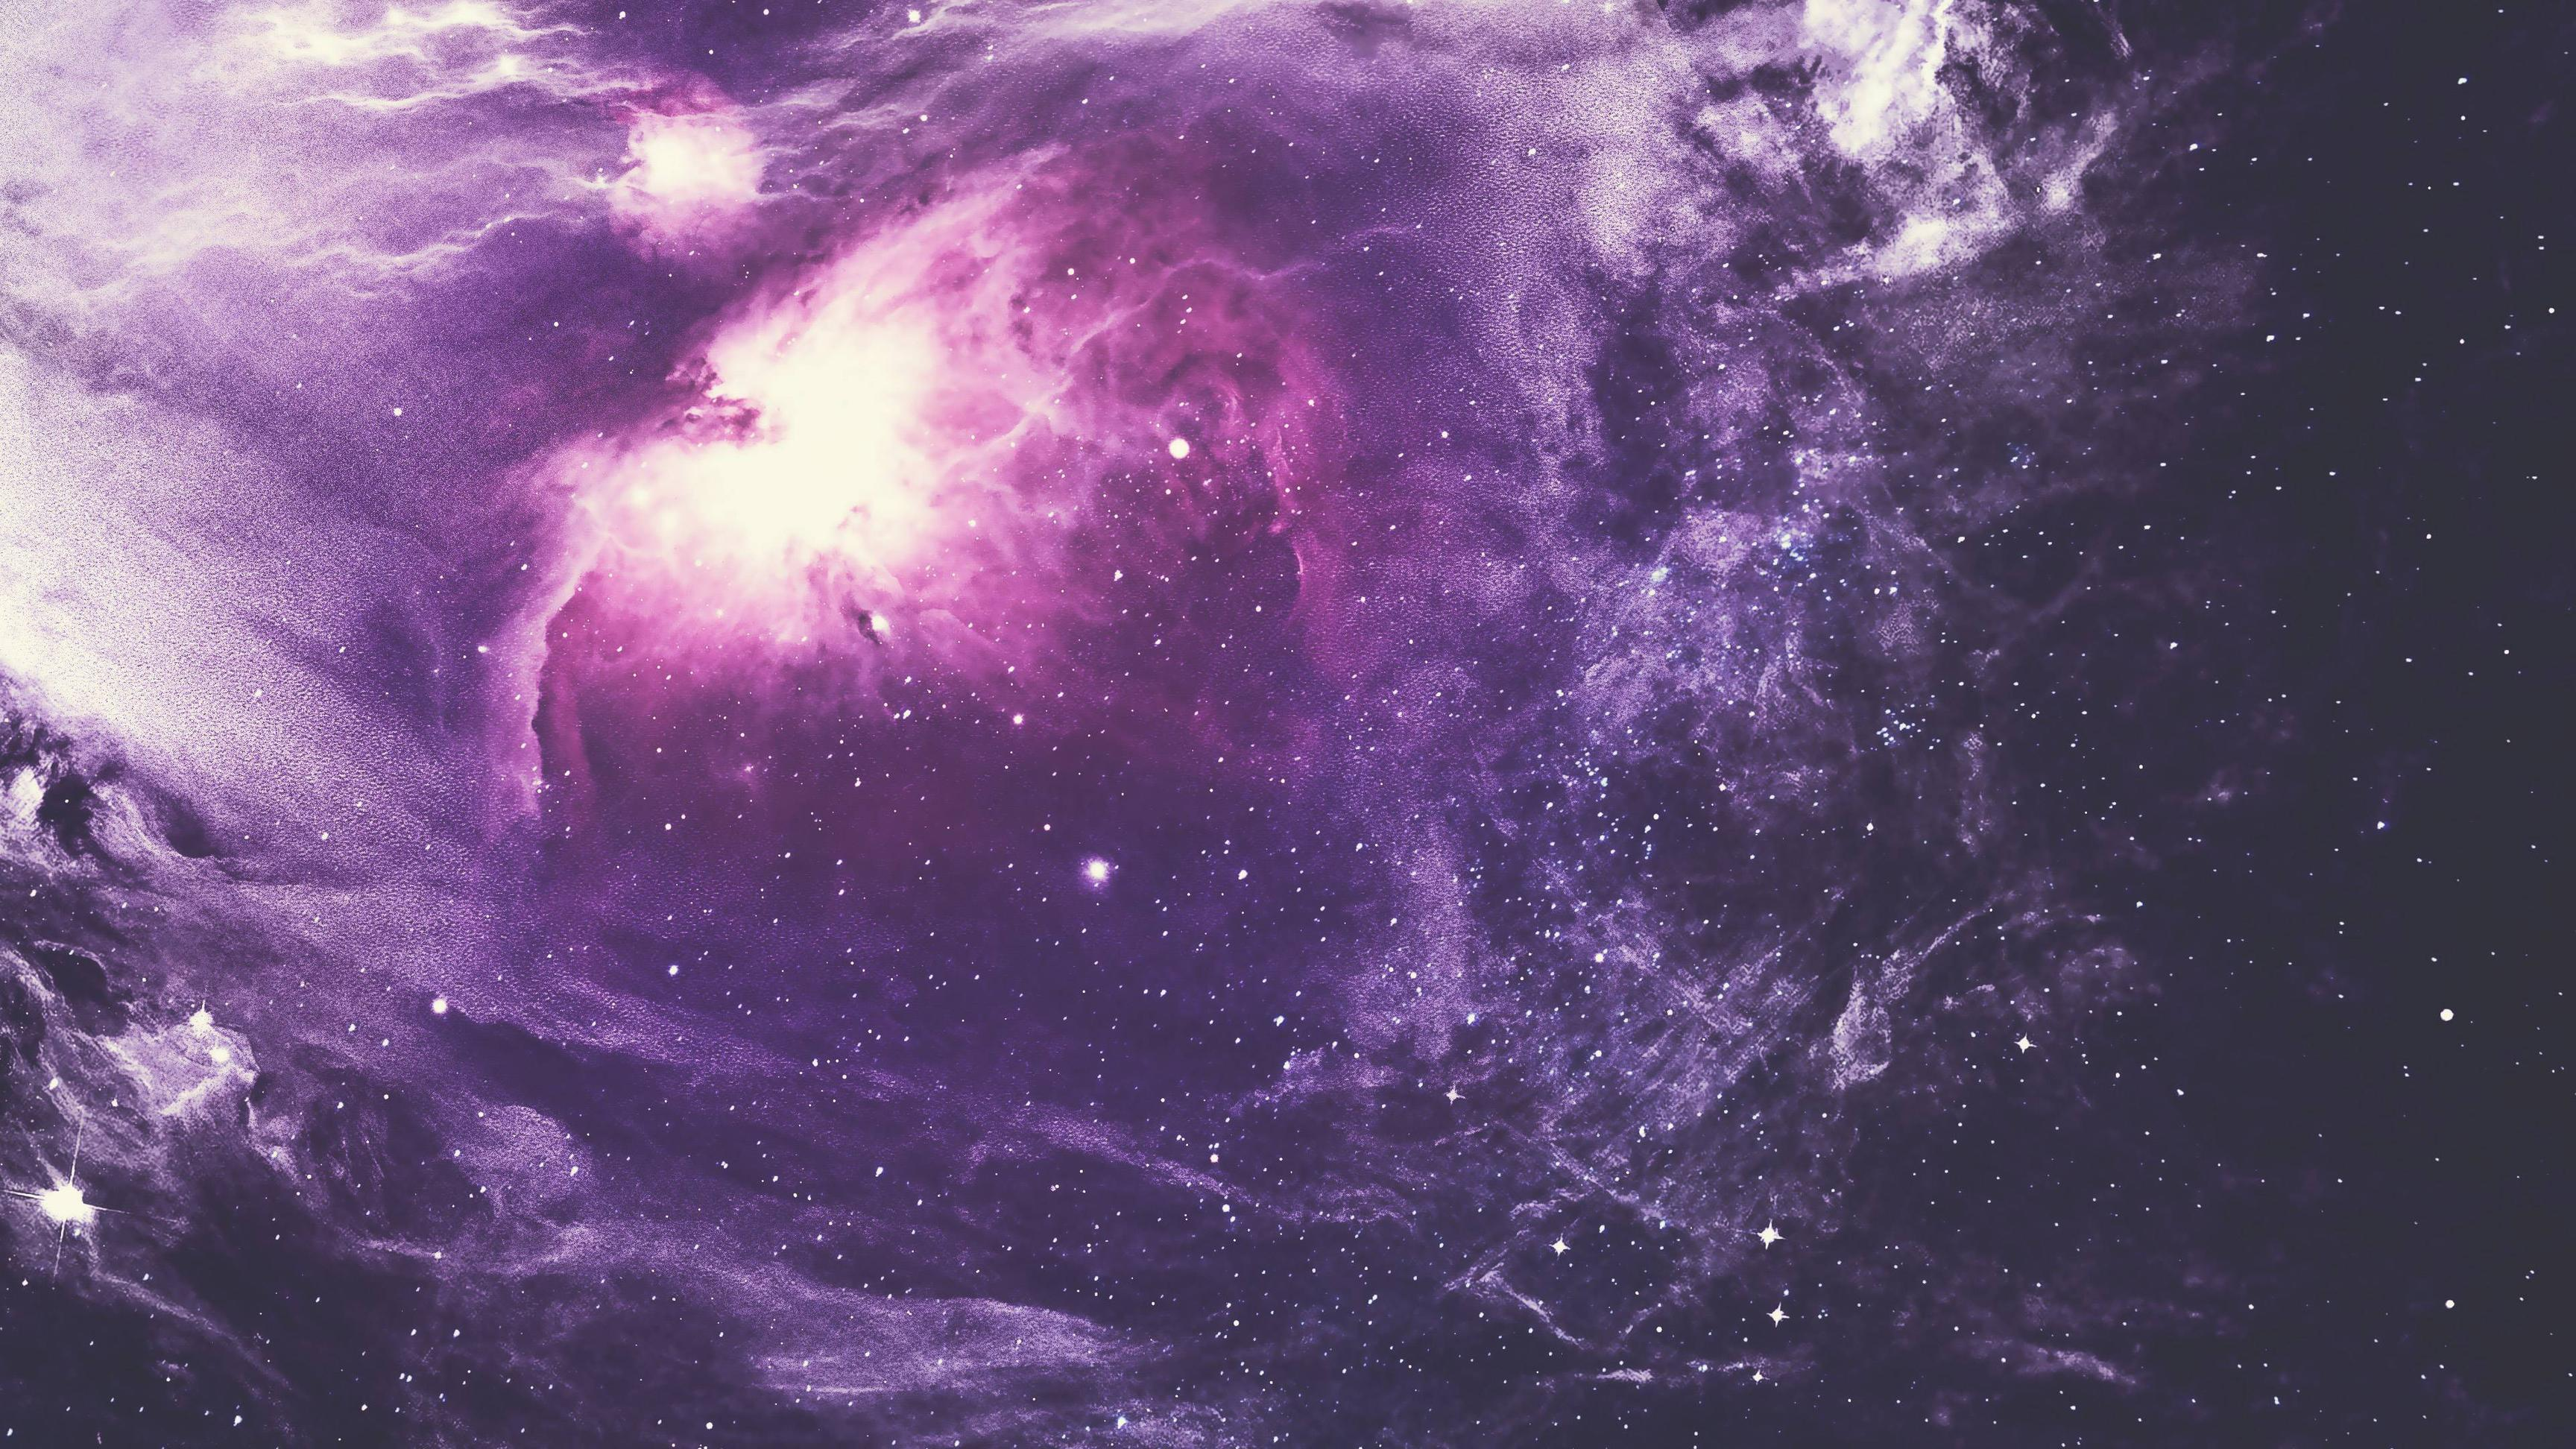 2048x1152 purple nebula 4k 2048x1152 resolution hd 4k wallpapers images backgrounds photos - Wallpaper galaxy 4k ...